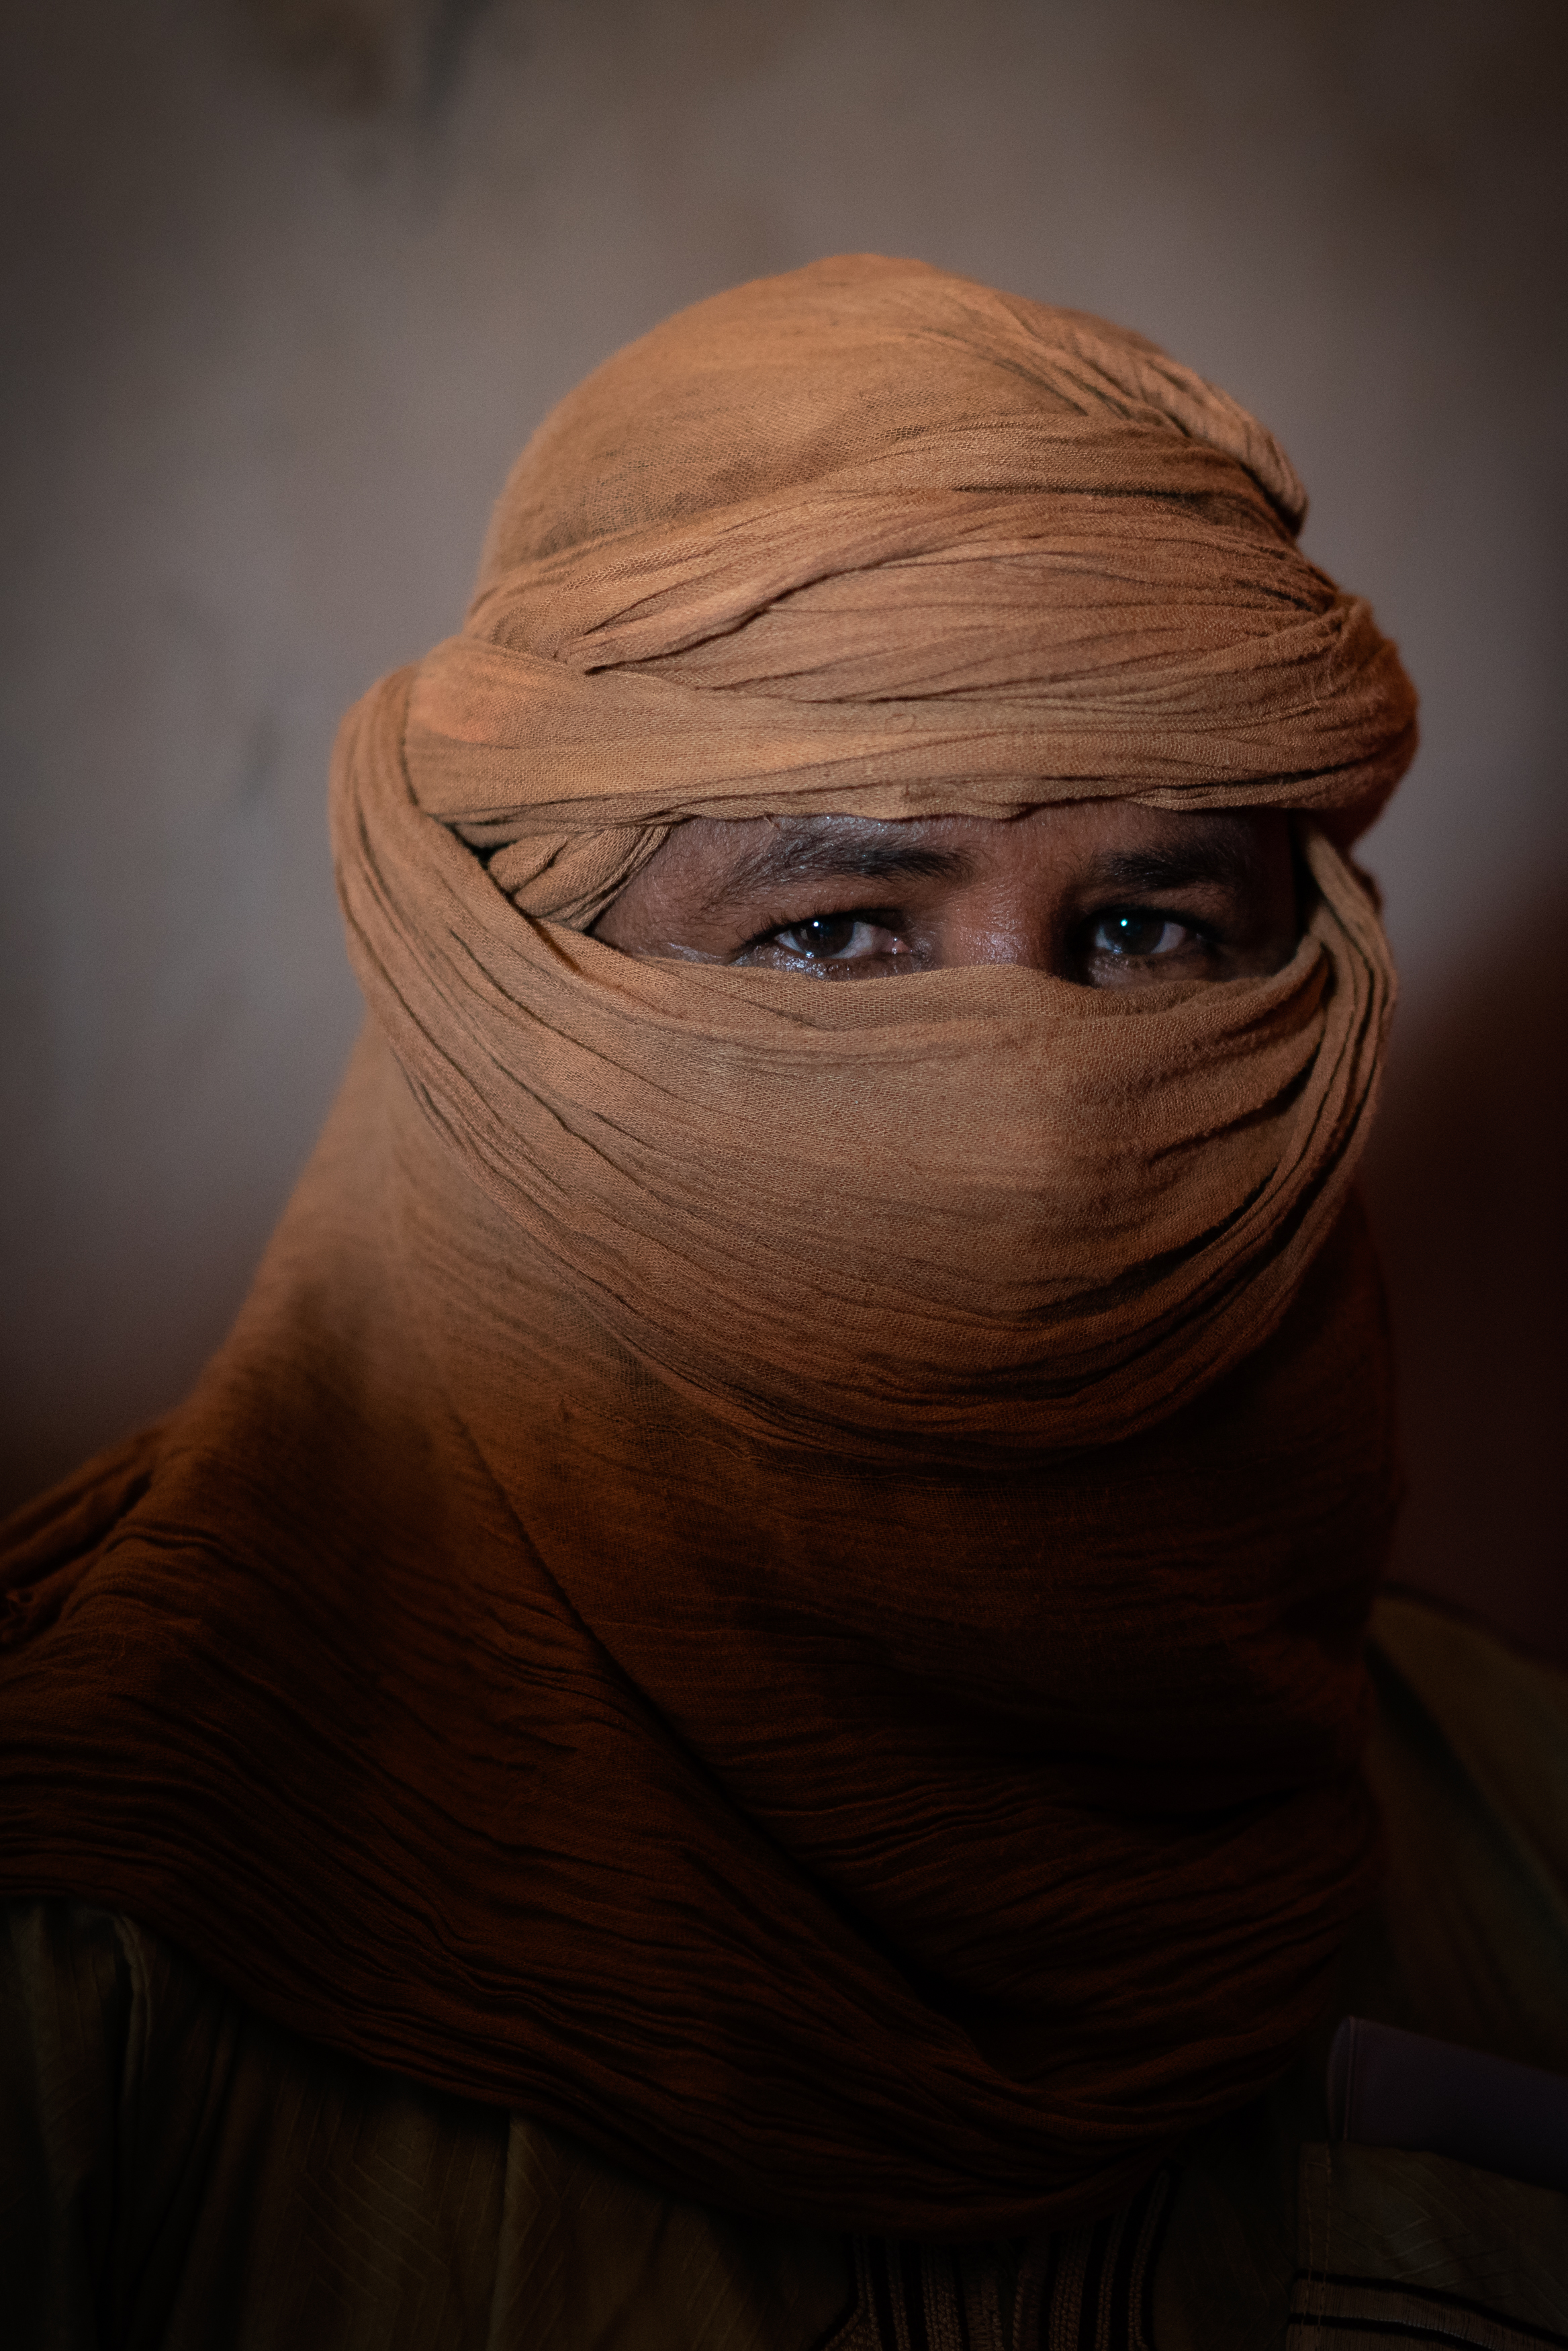 """An ex-smuggler in Agadez, Niger, Thursday, July 19, 2018. """"This place is now for the Americans and French,"""" he says of Agadez, """"They took our livelihood and don't give us anything in return. Who says they can do that?"""" CREDIT: Mackenzie Knowles-Coursin for The Wall Street Journal. NIGERSPY"""